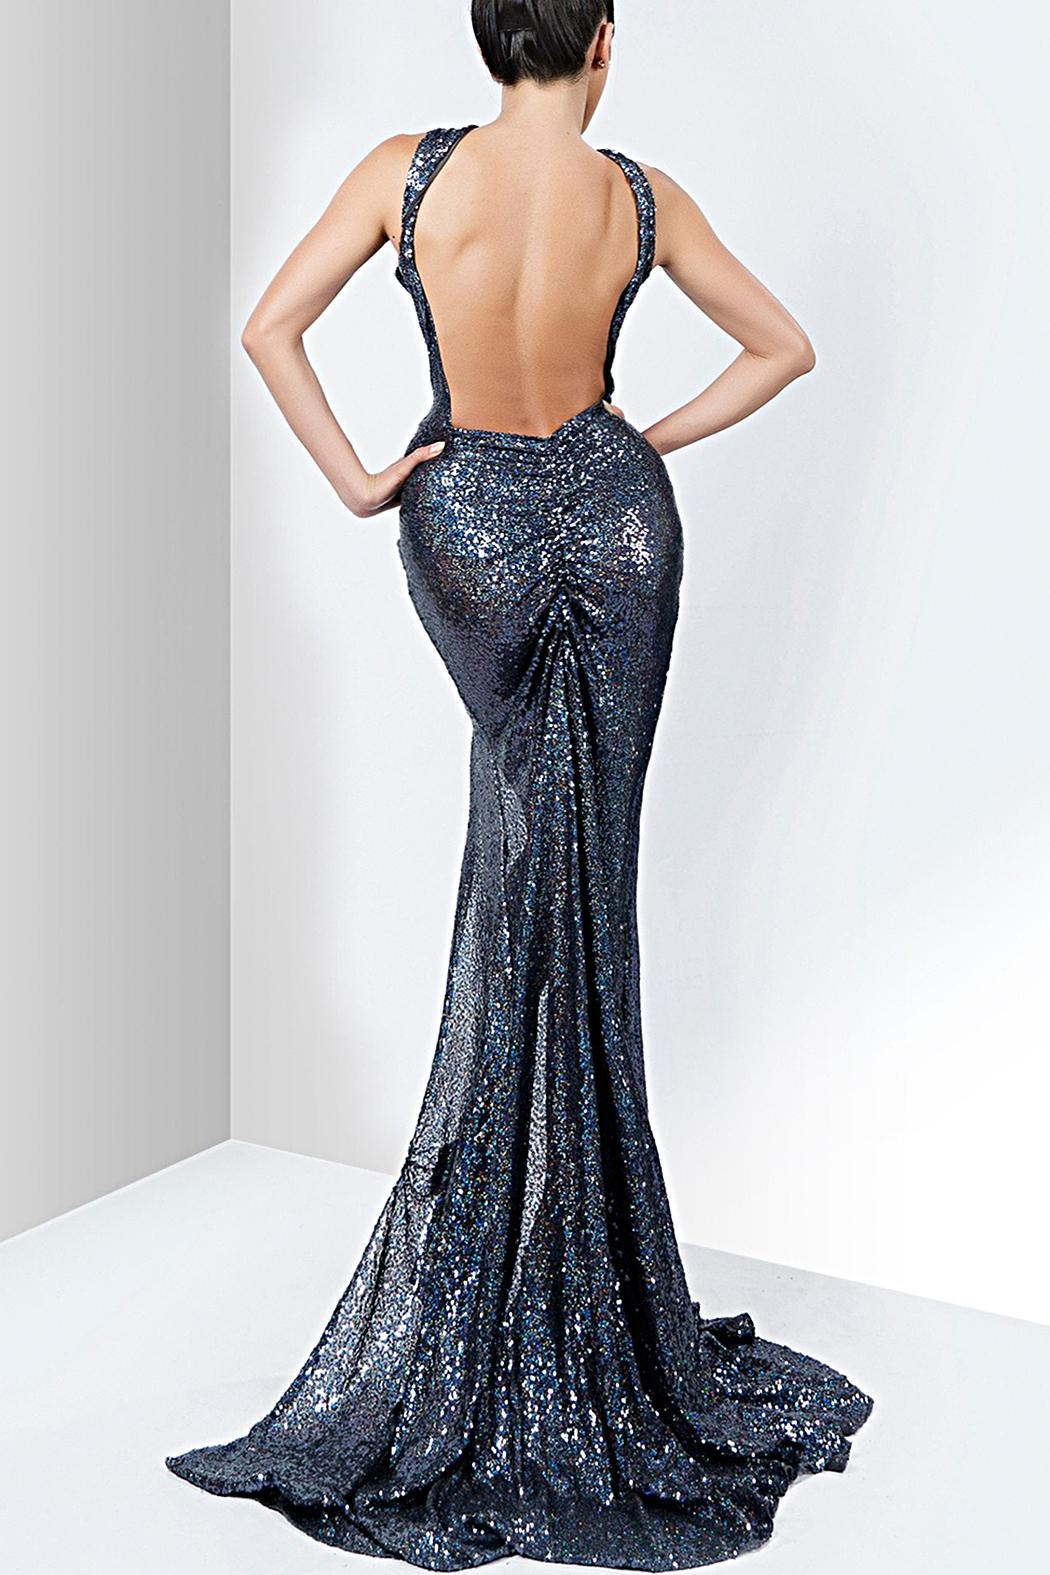 Savee Couture Savee Sequin Slit Dress - Front Full Image